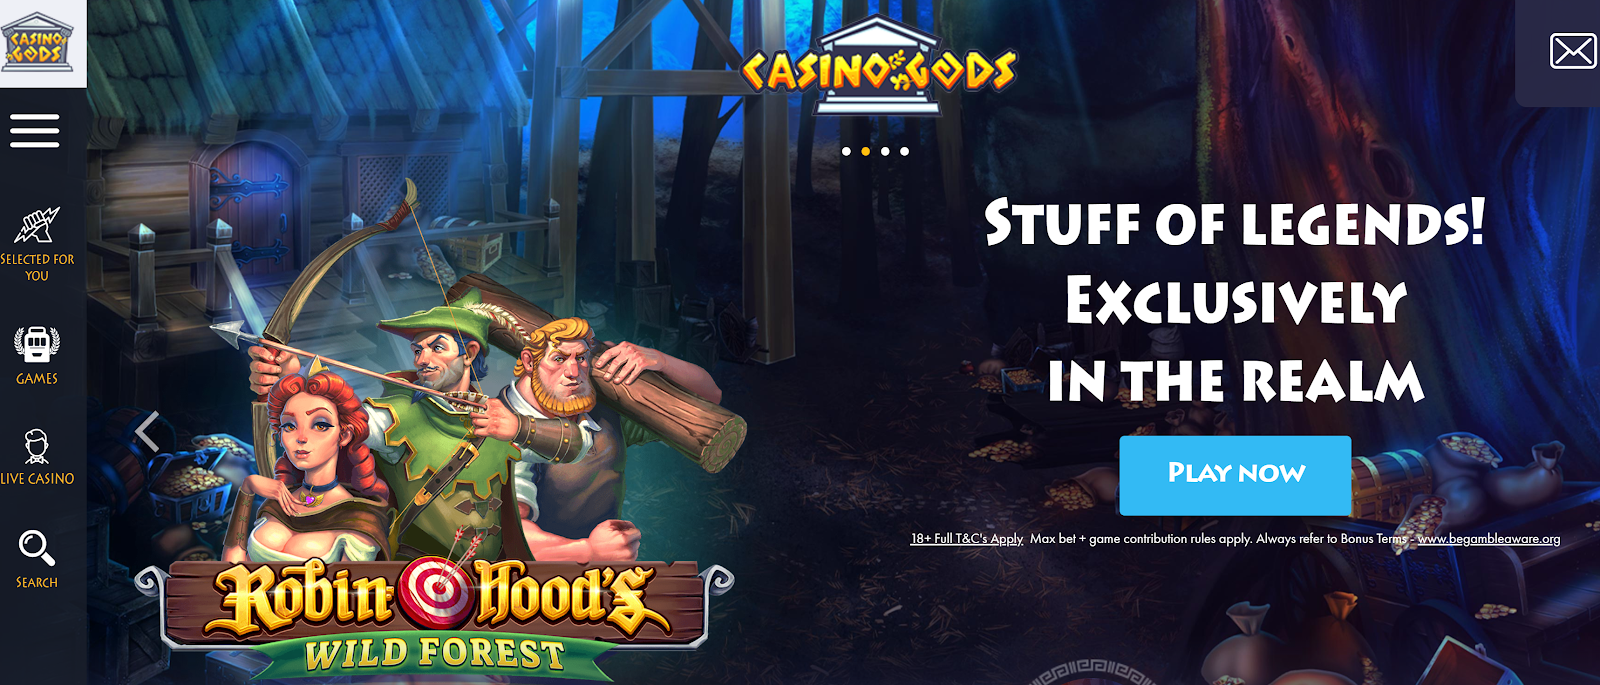 Robin Hood's Wild Forest is one of the many games you can play at Casino Gods